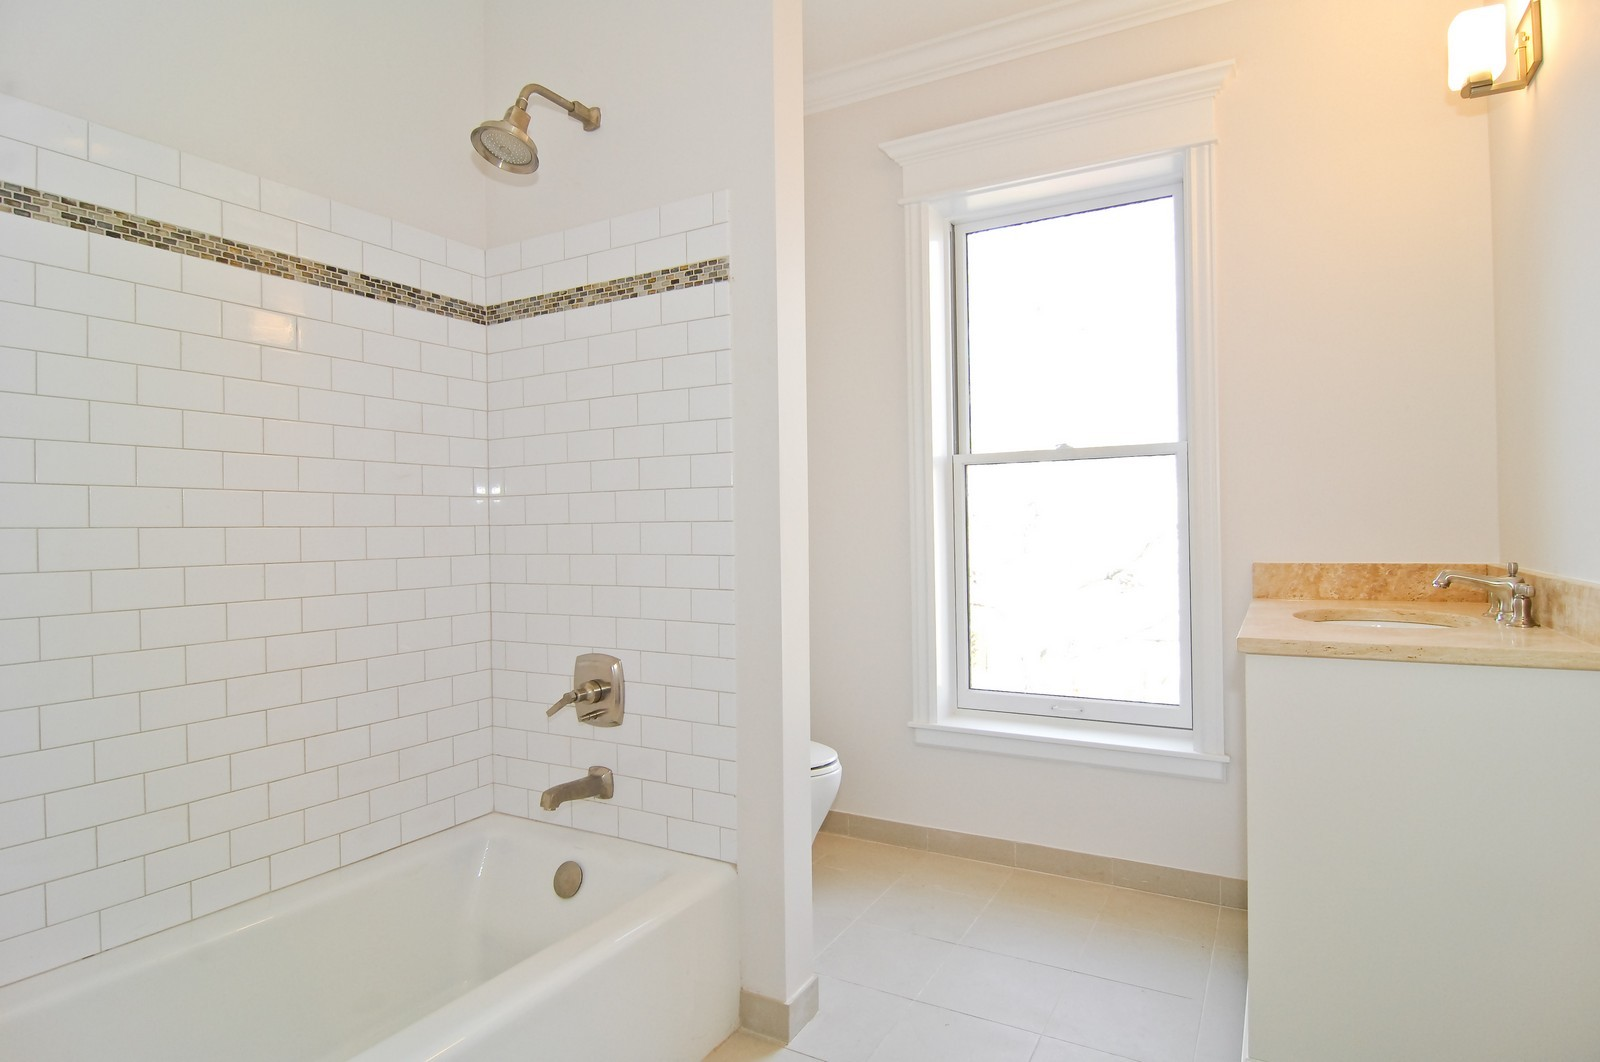 Real Estate Photography - 1845 W. Newport, Chicago, IL, 60657 - Location 1